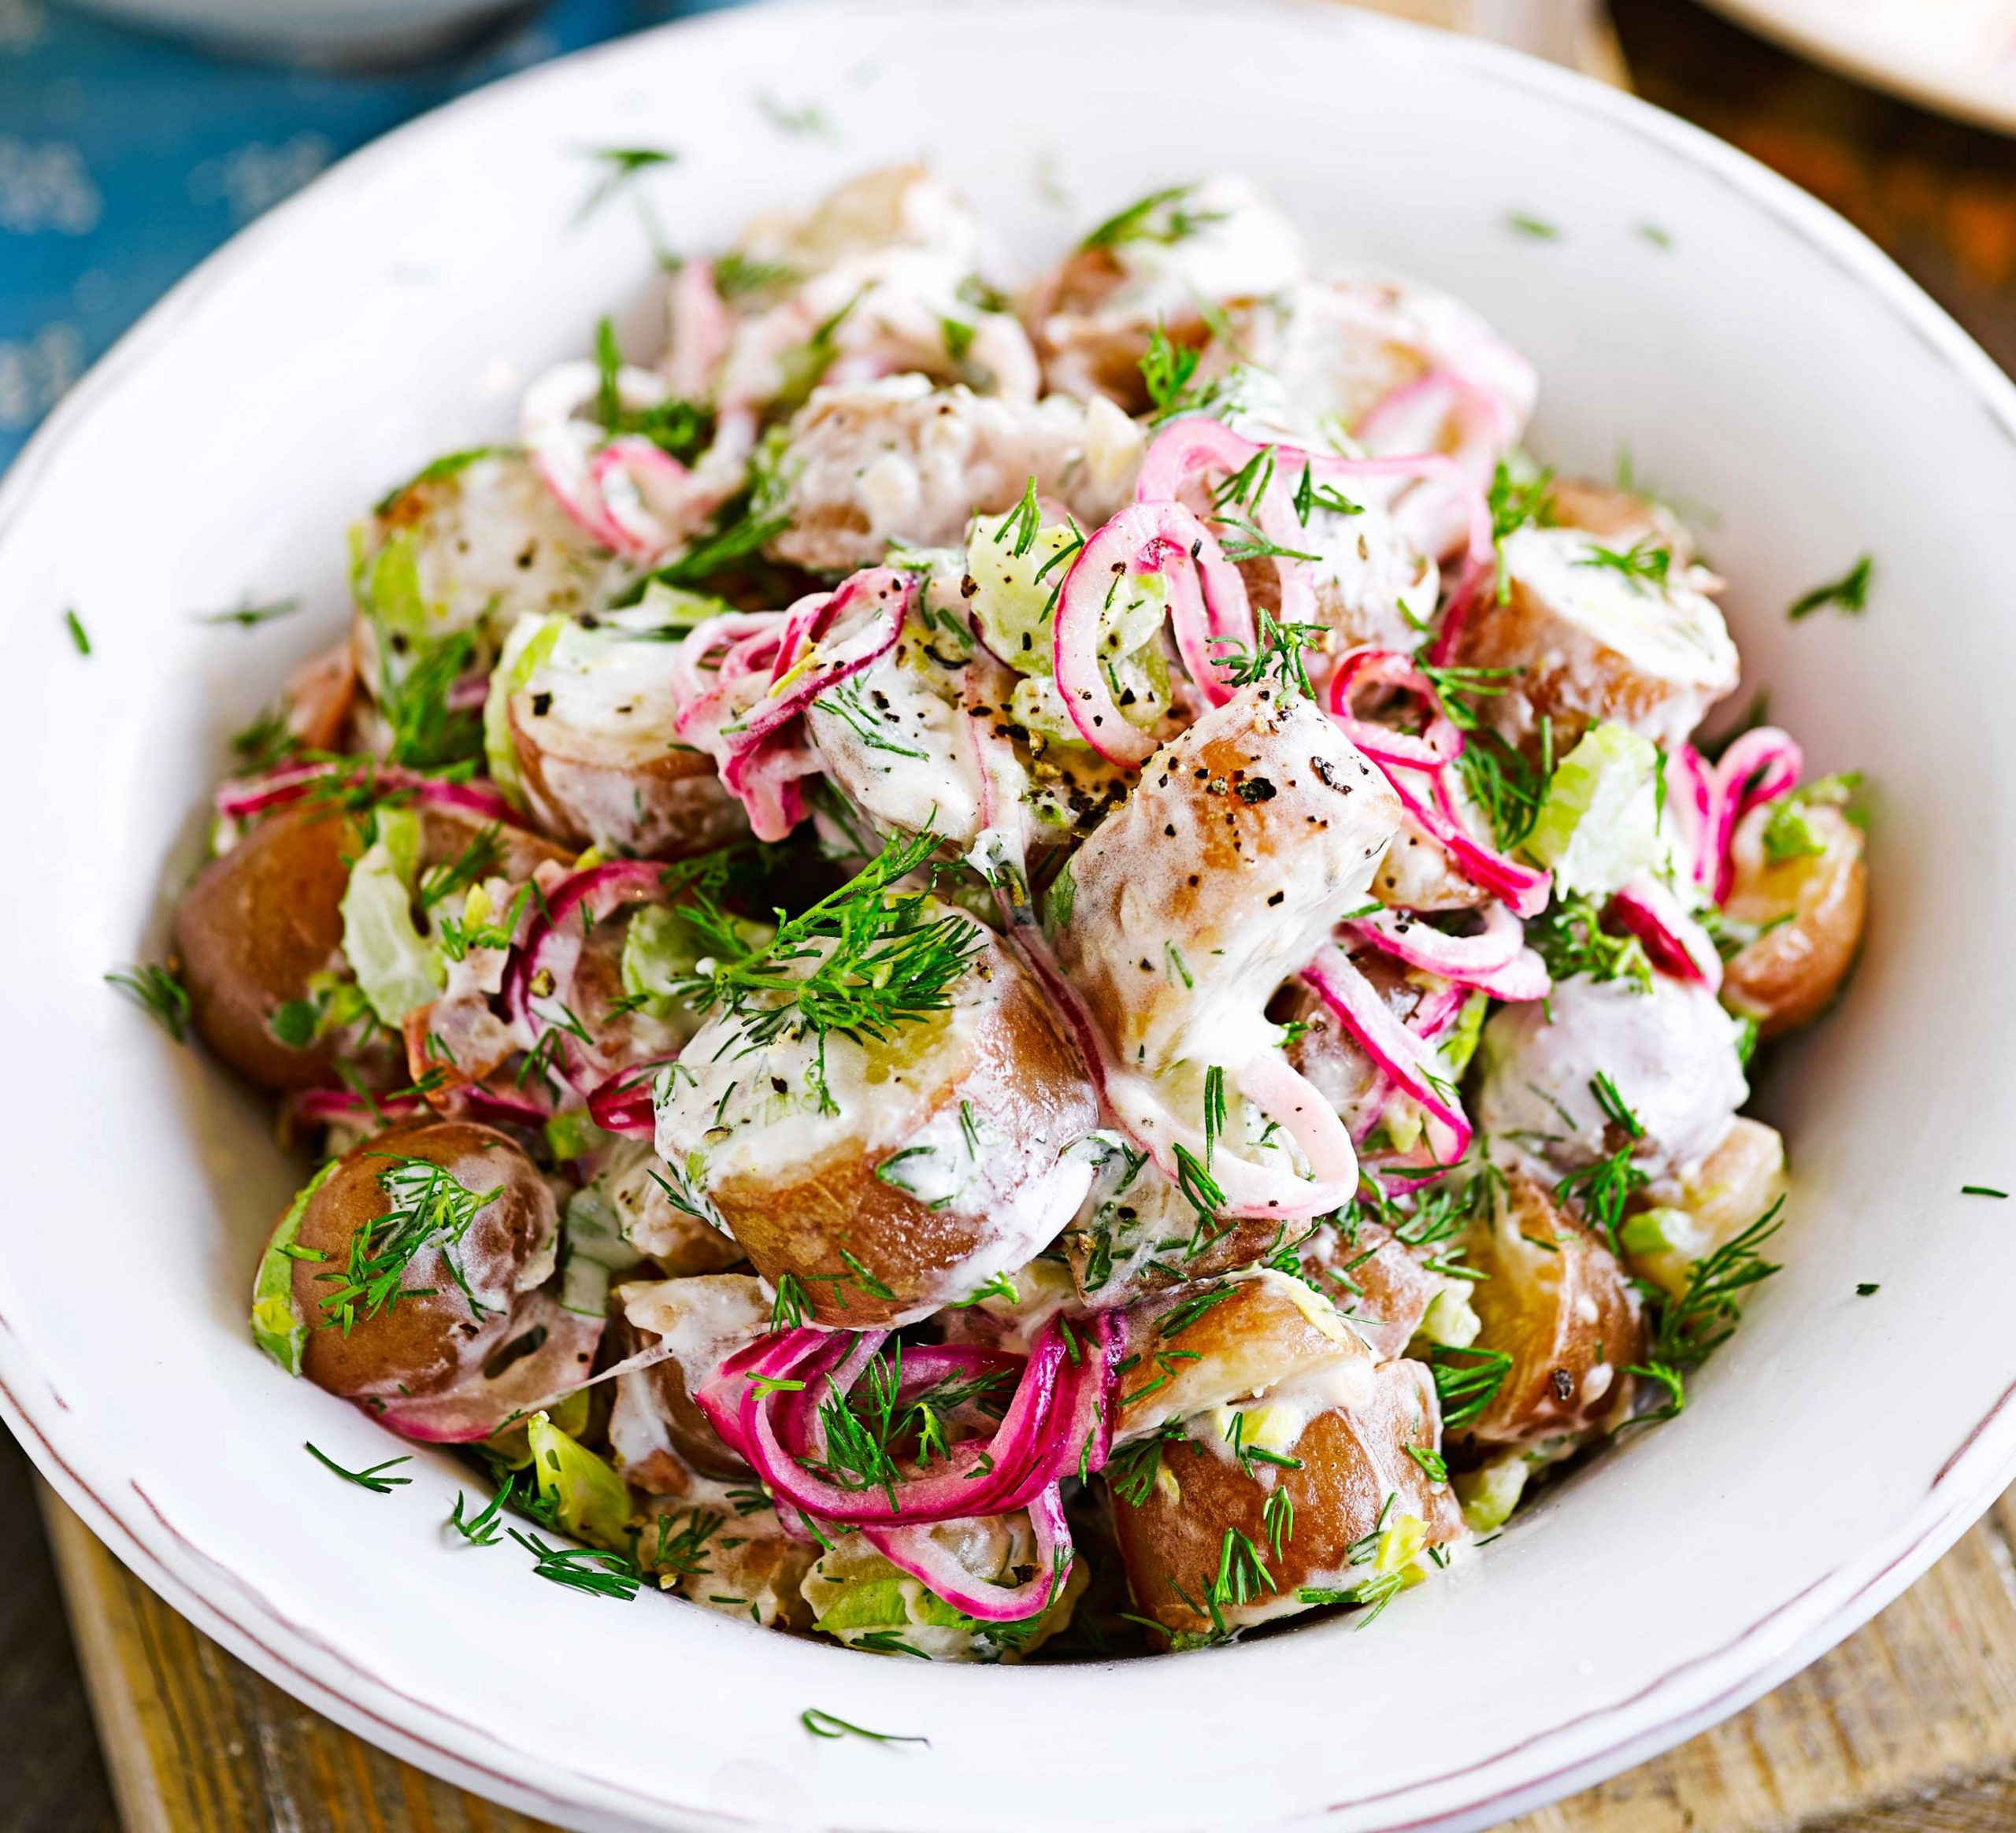 Red & white potato salad with pickled onions